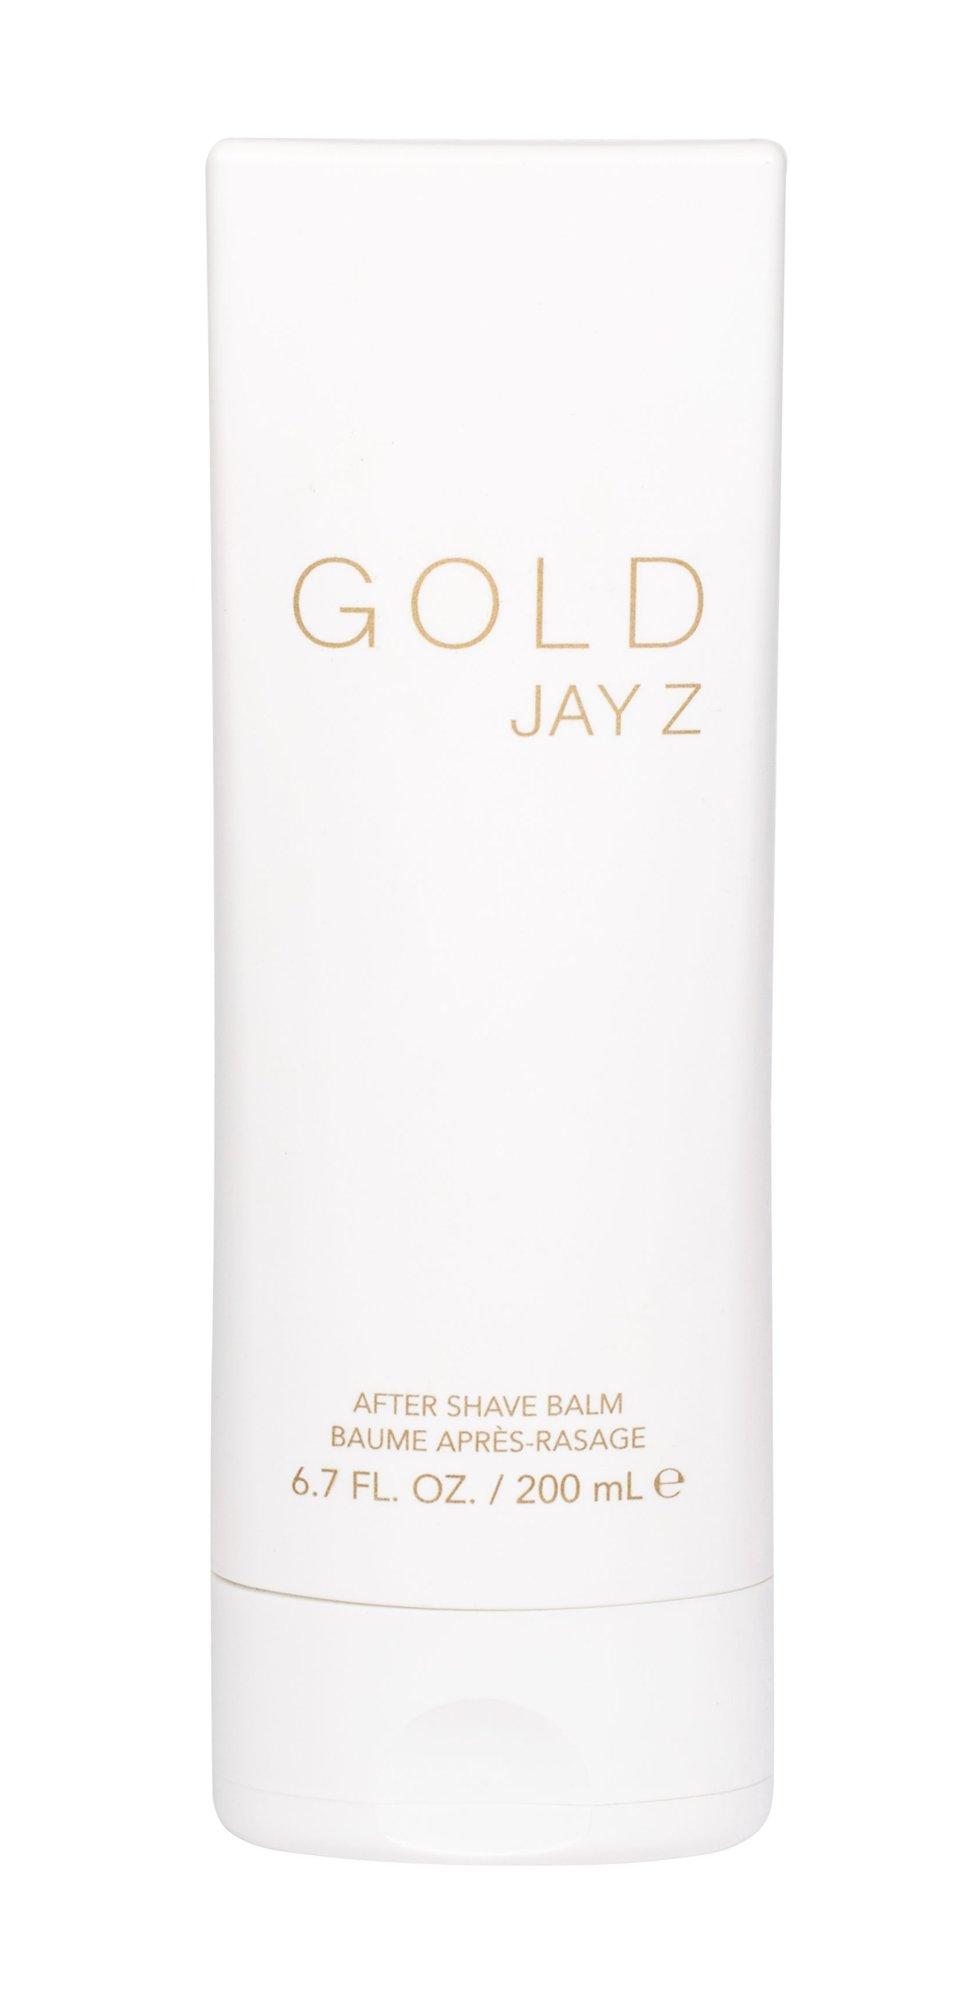 Jay Z Gold Aftershave Balm 200ml